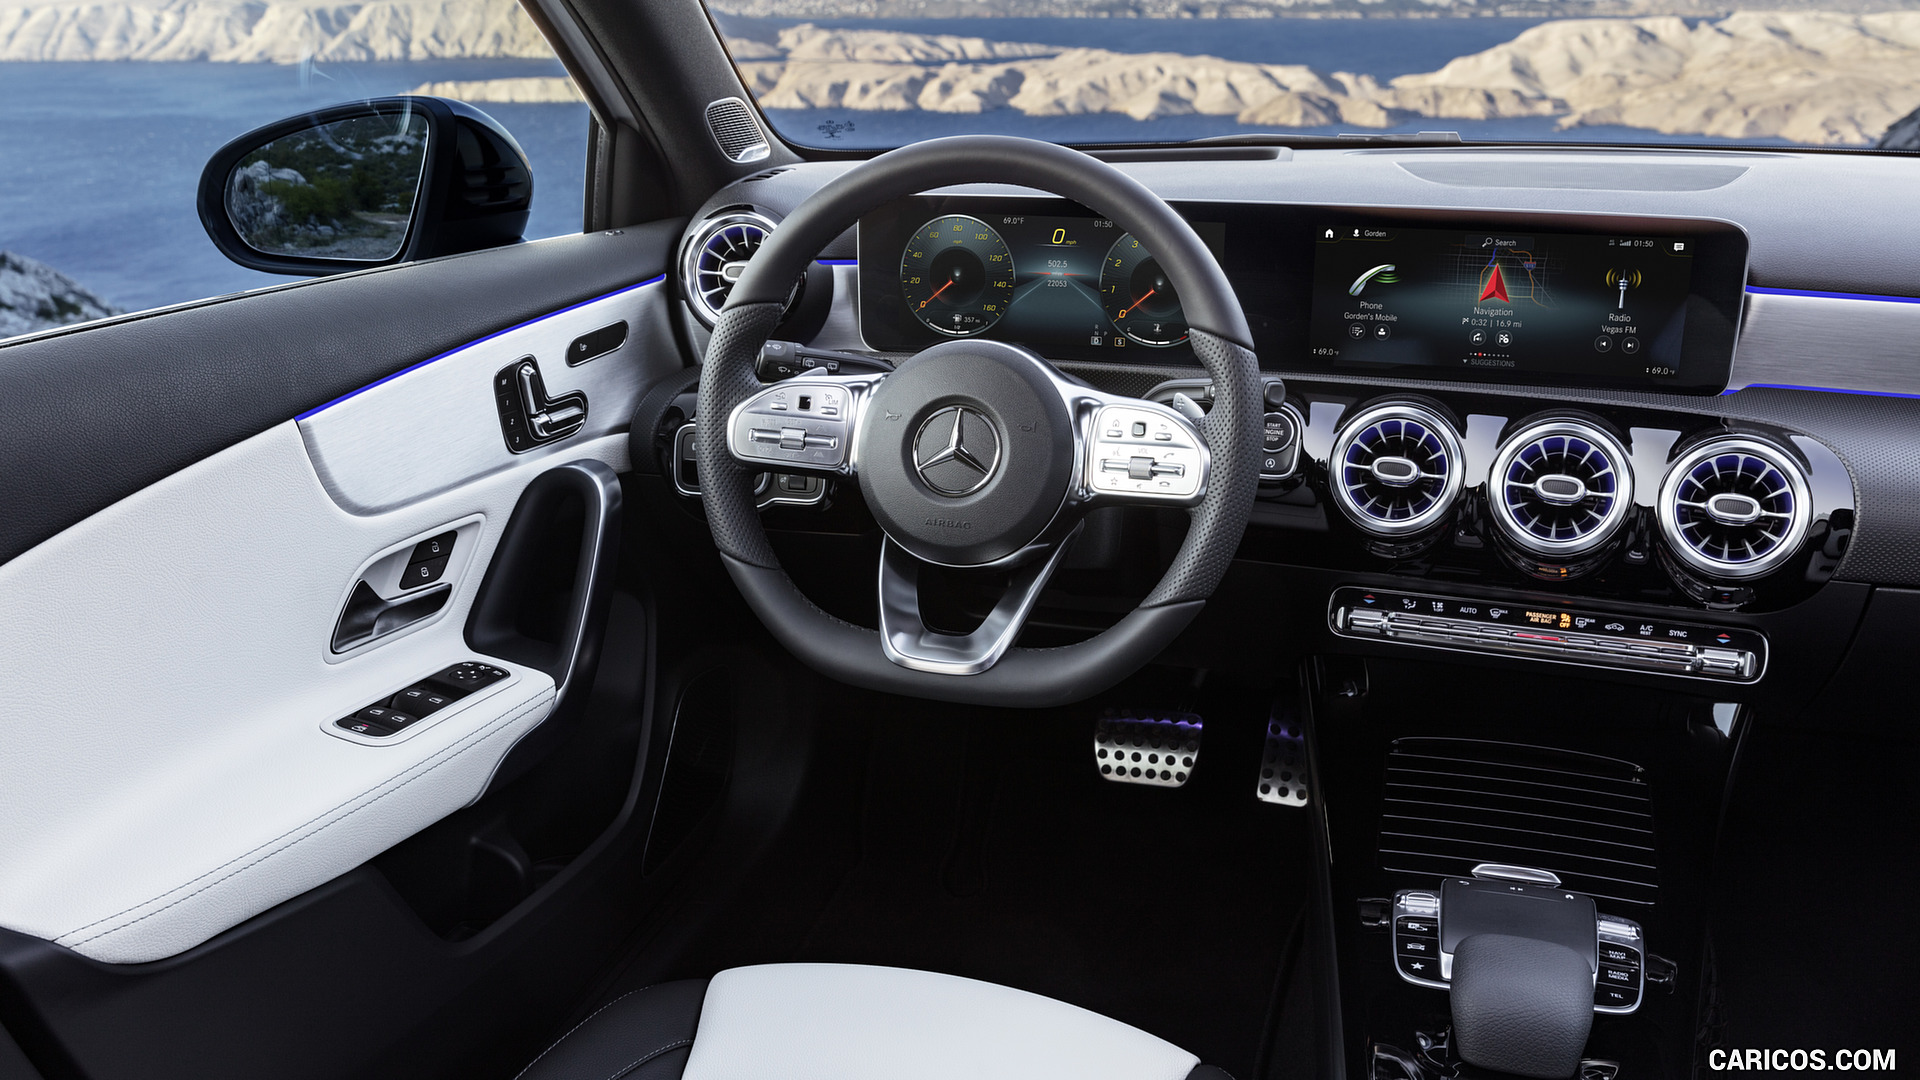 2019 Mercedes Benz A Class   AMG Line nevagreyblack Interior HD 1920x1080